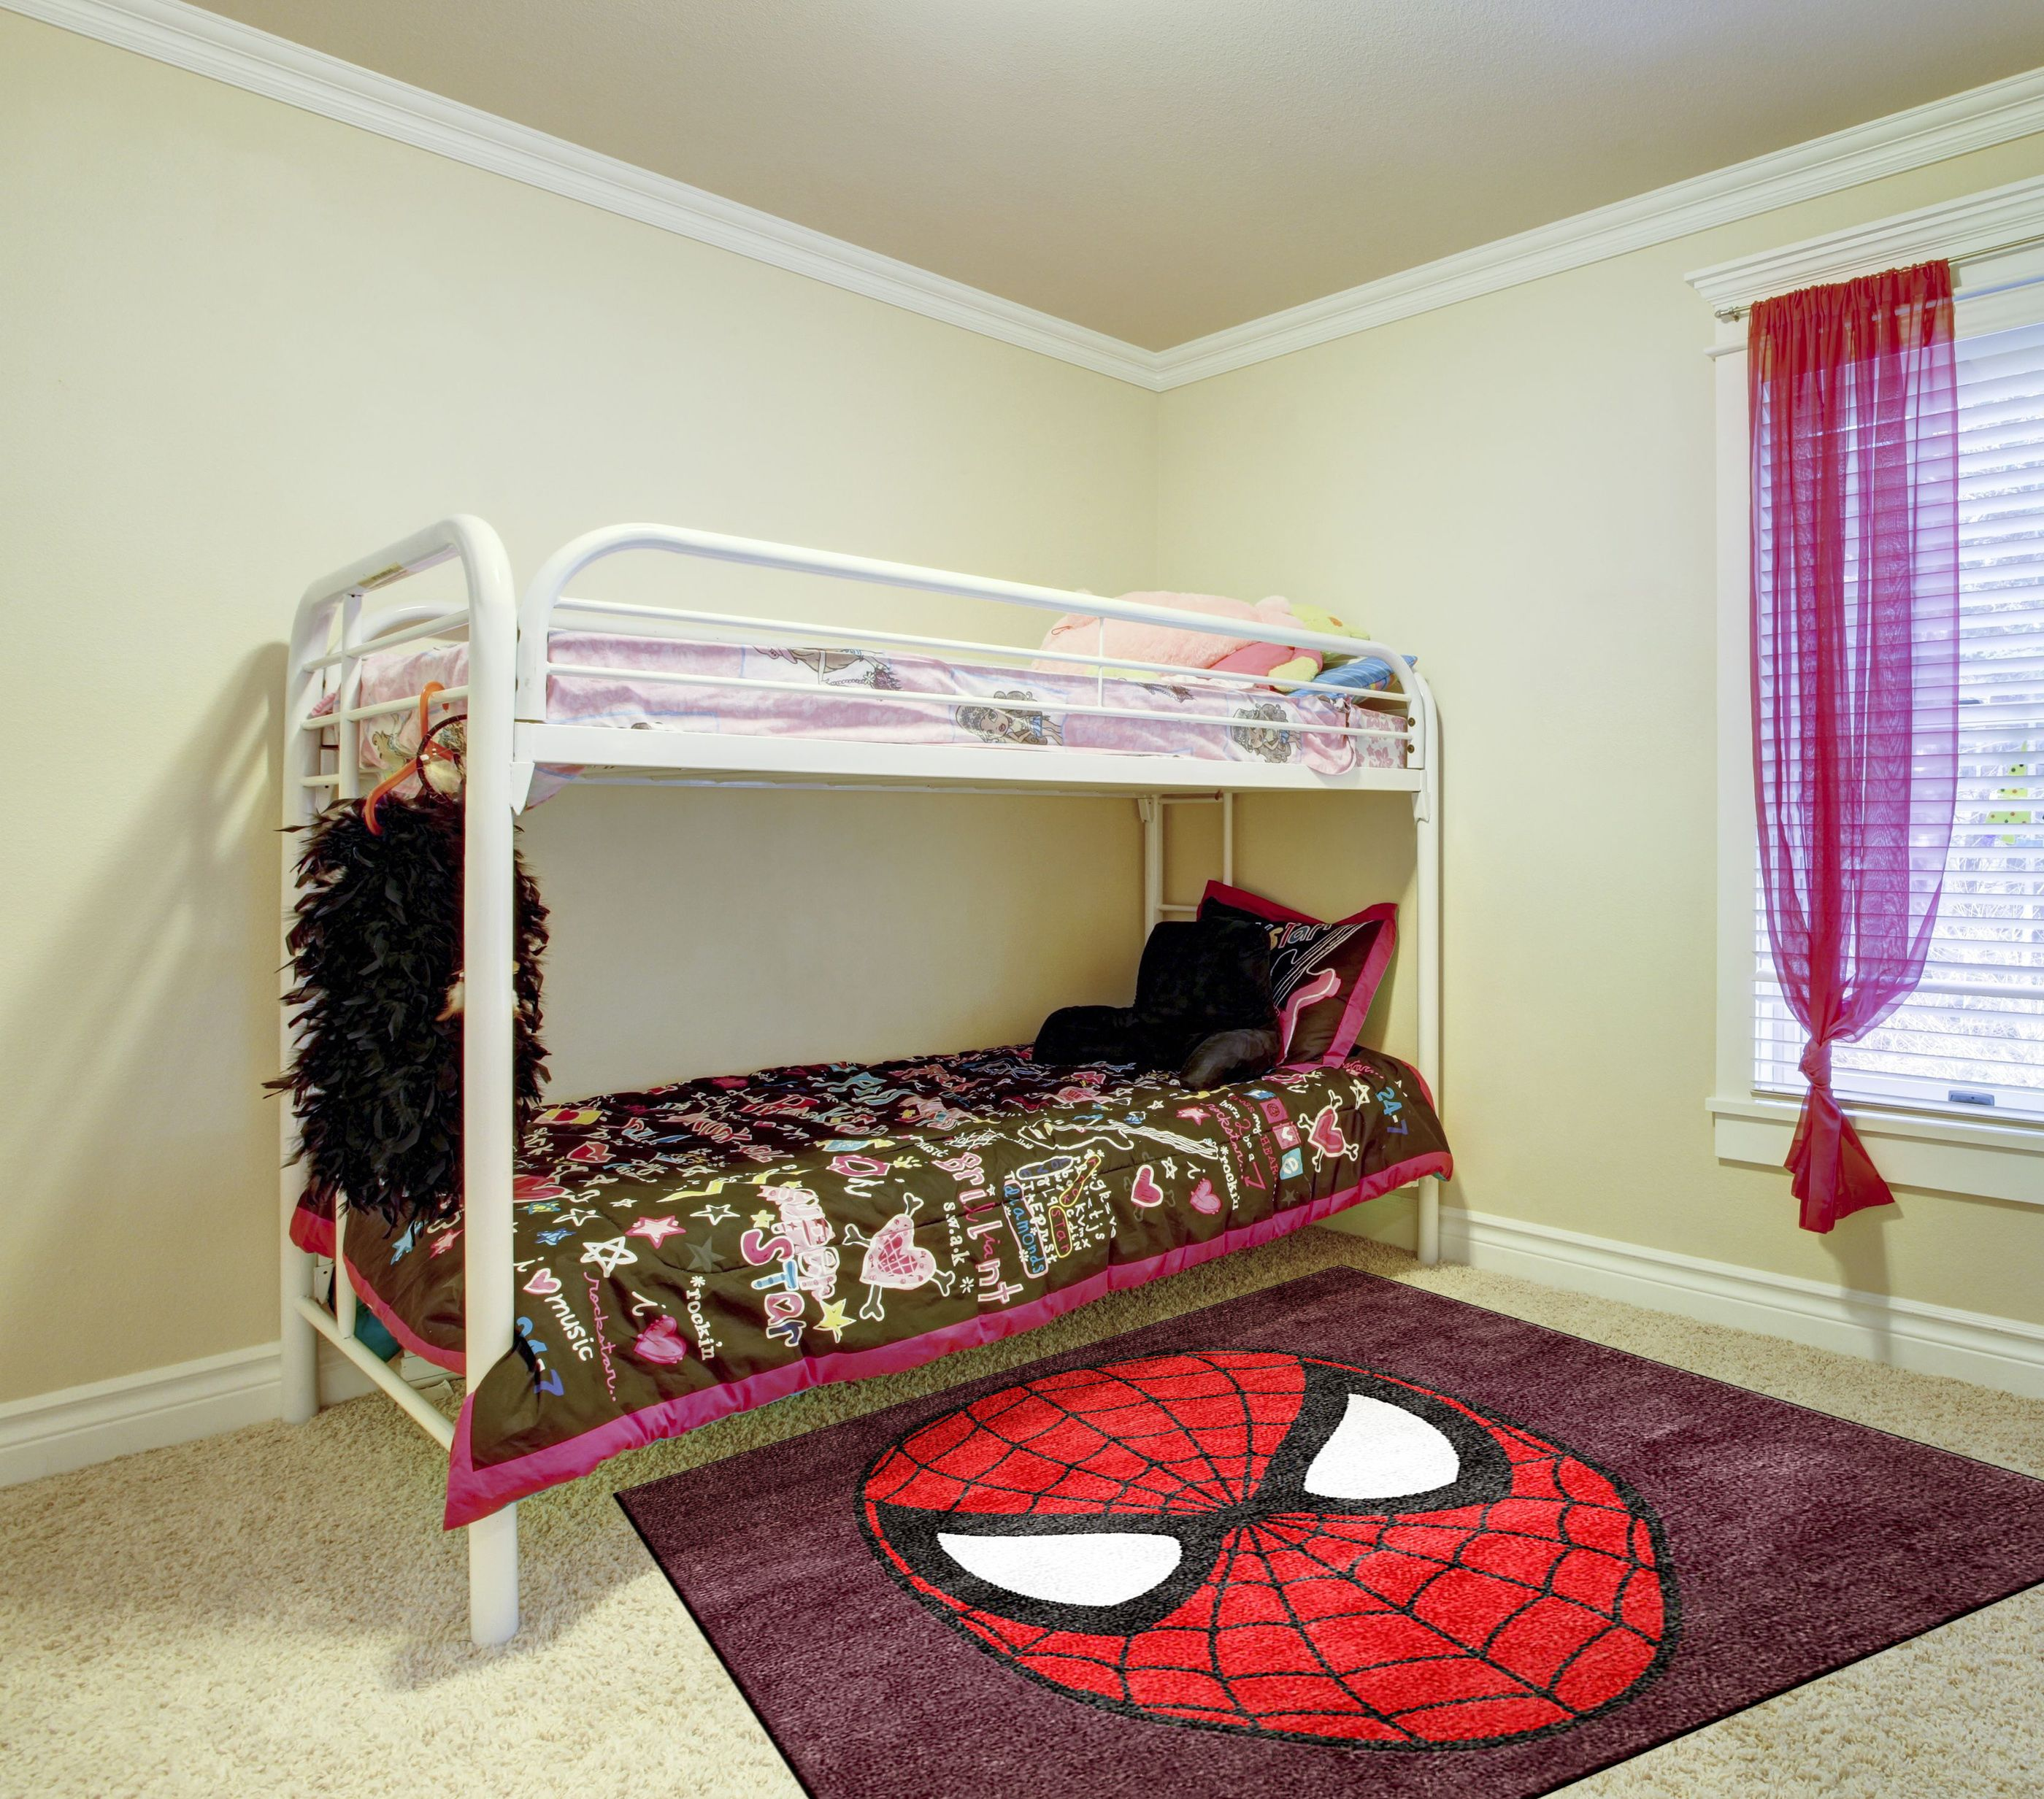 mats rugs living carpet and round s for non mat computer cilected room item kids bed cartoon bedroom color children carpets